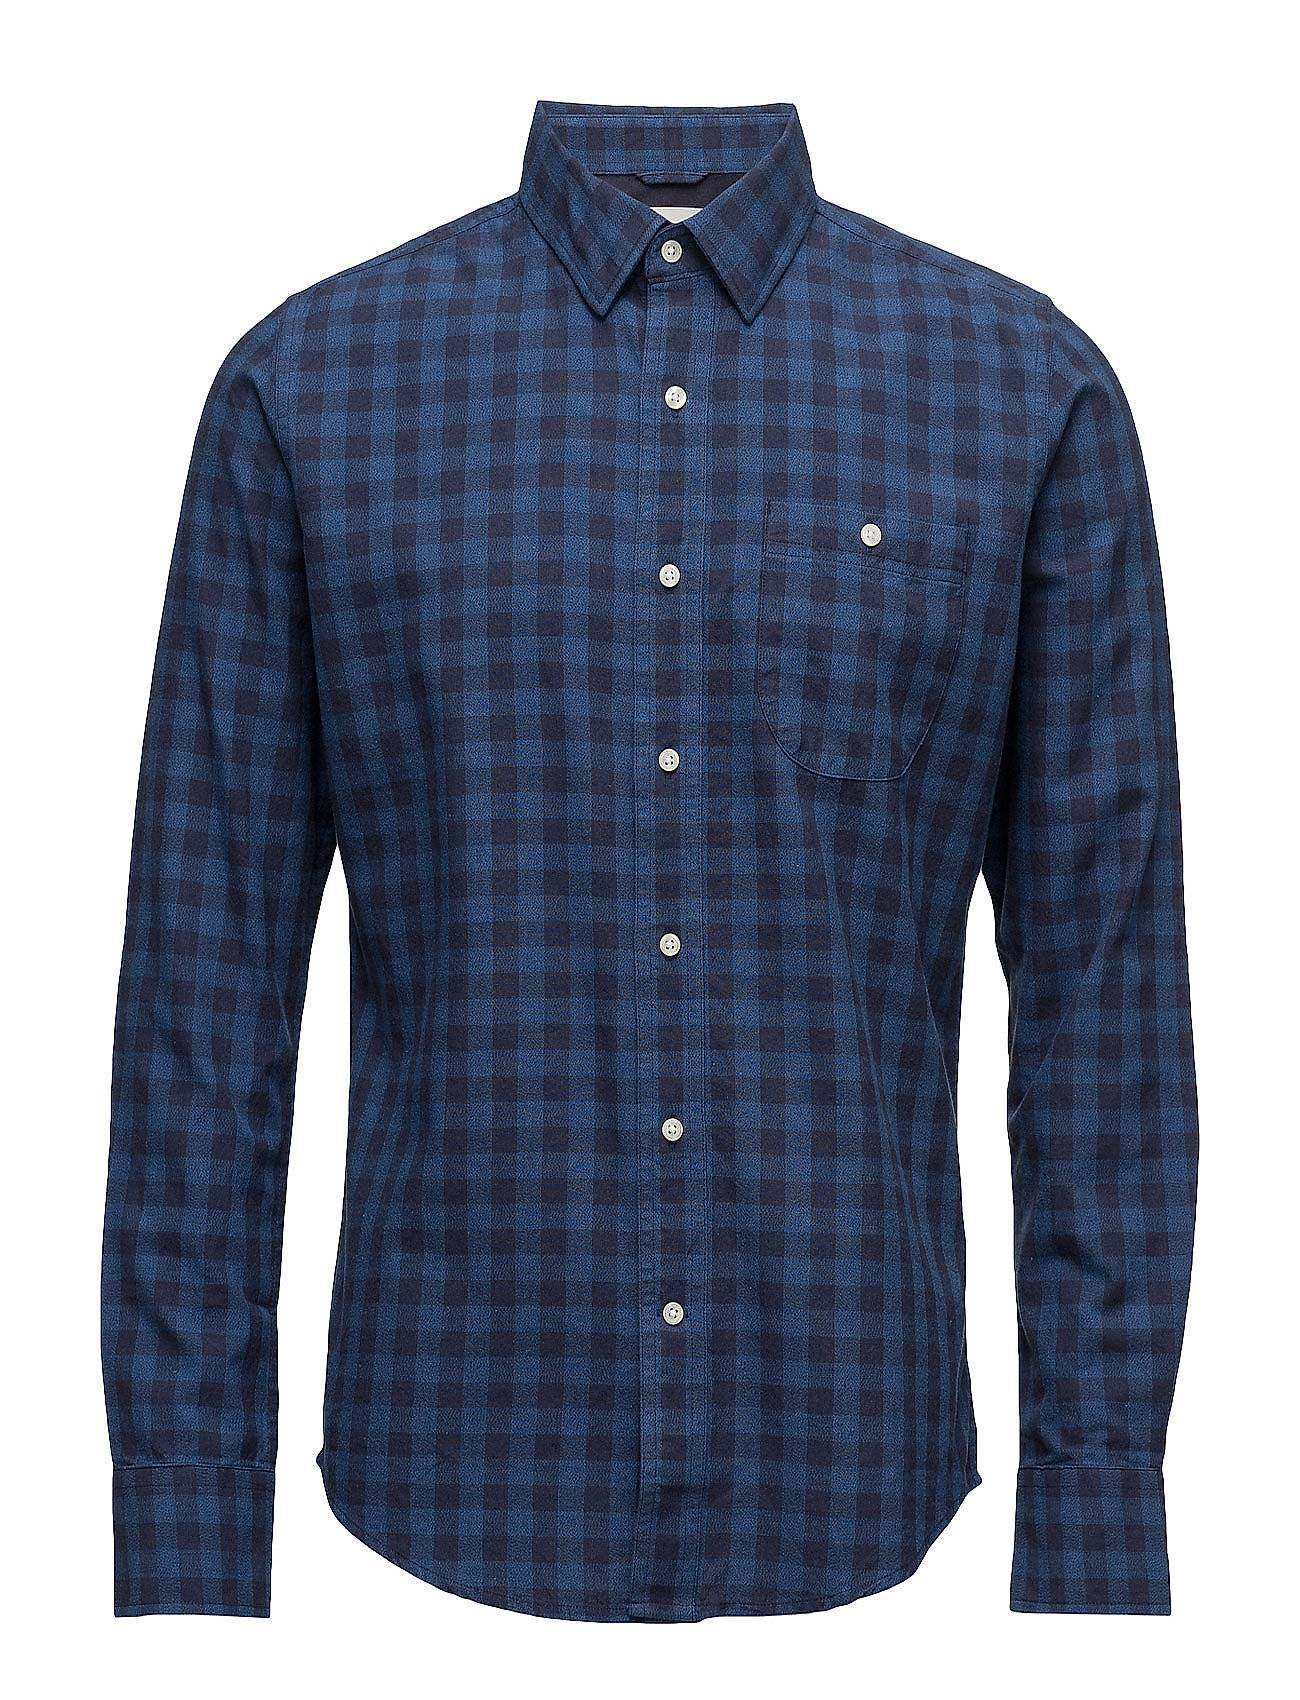 Knowledge Cotton Apparel Checked Shirt - Gots